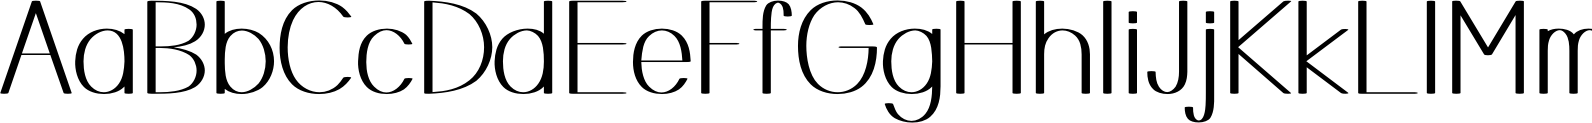 Mankind Regular Font